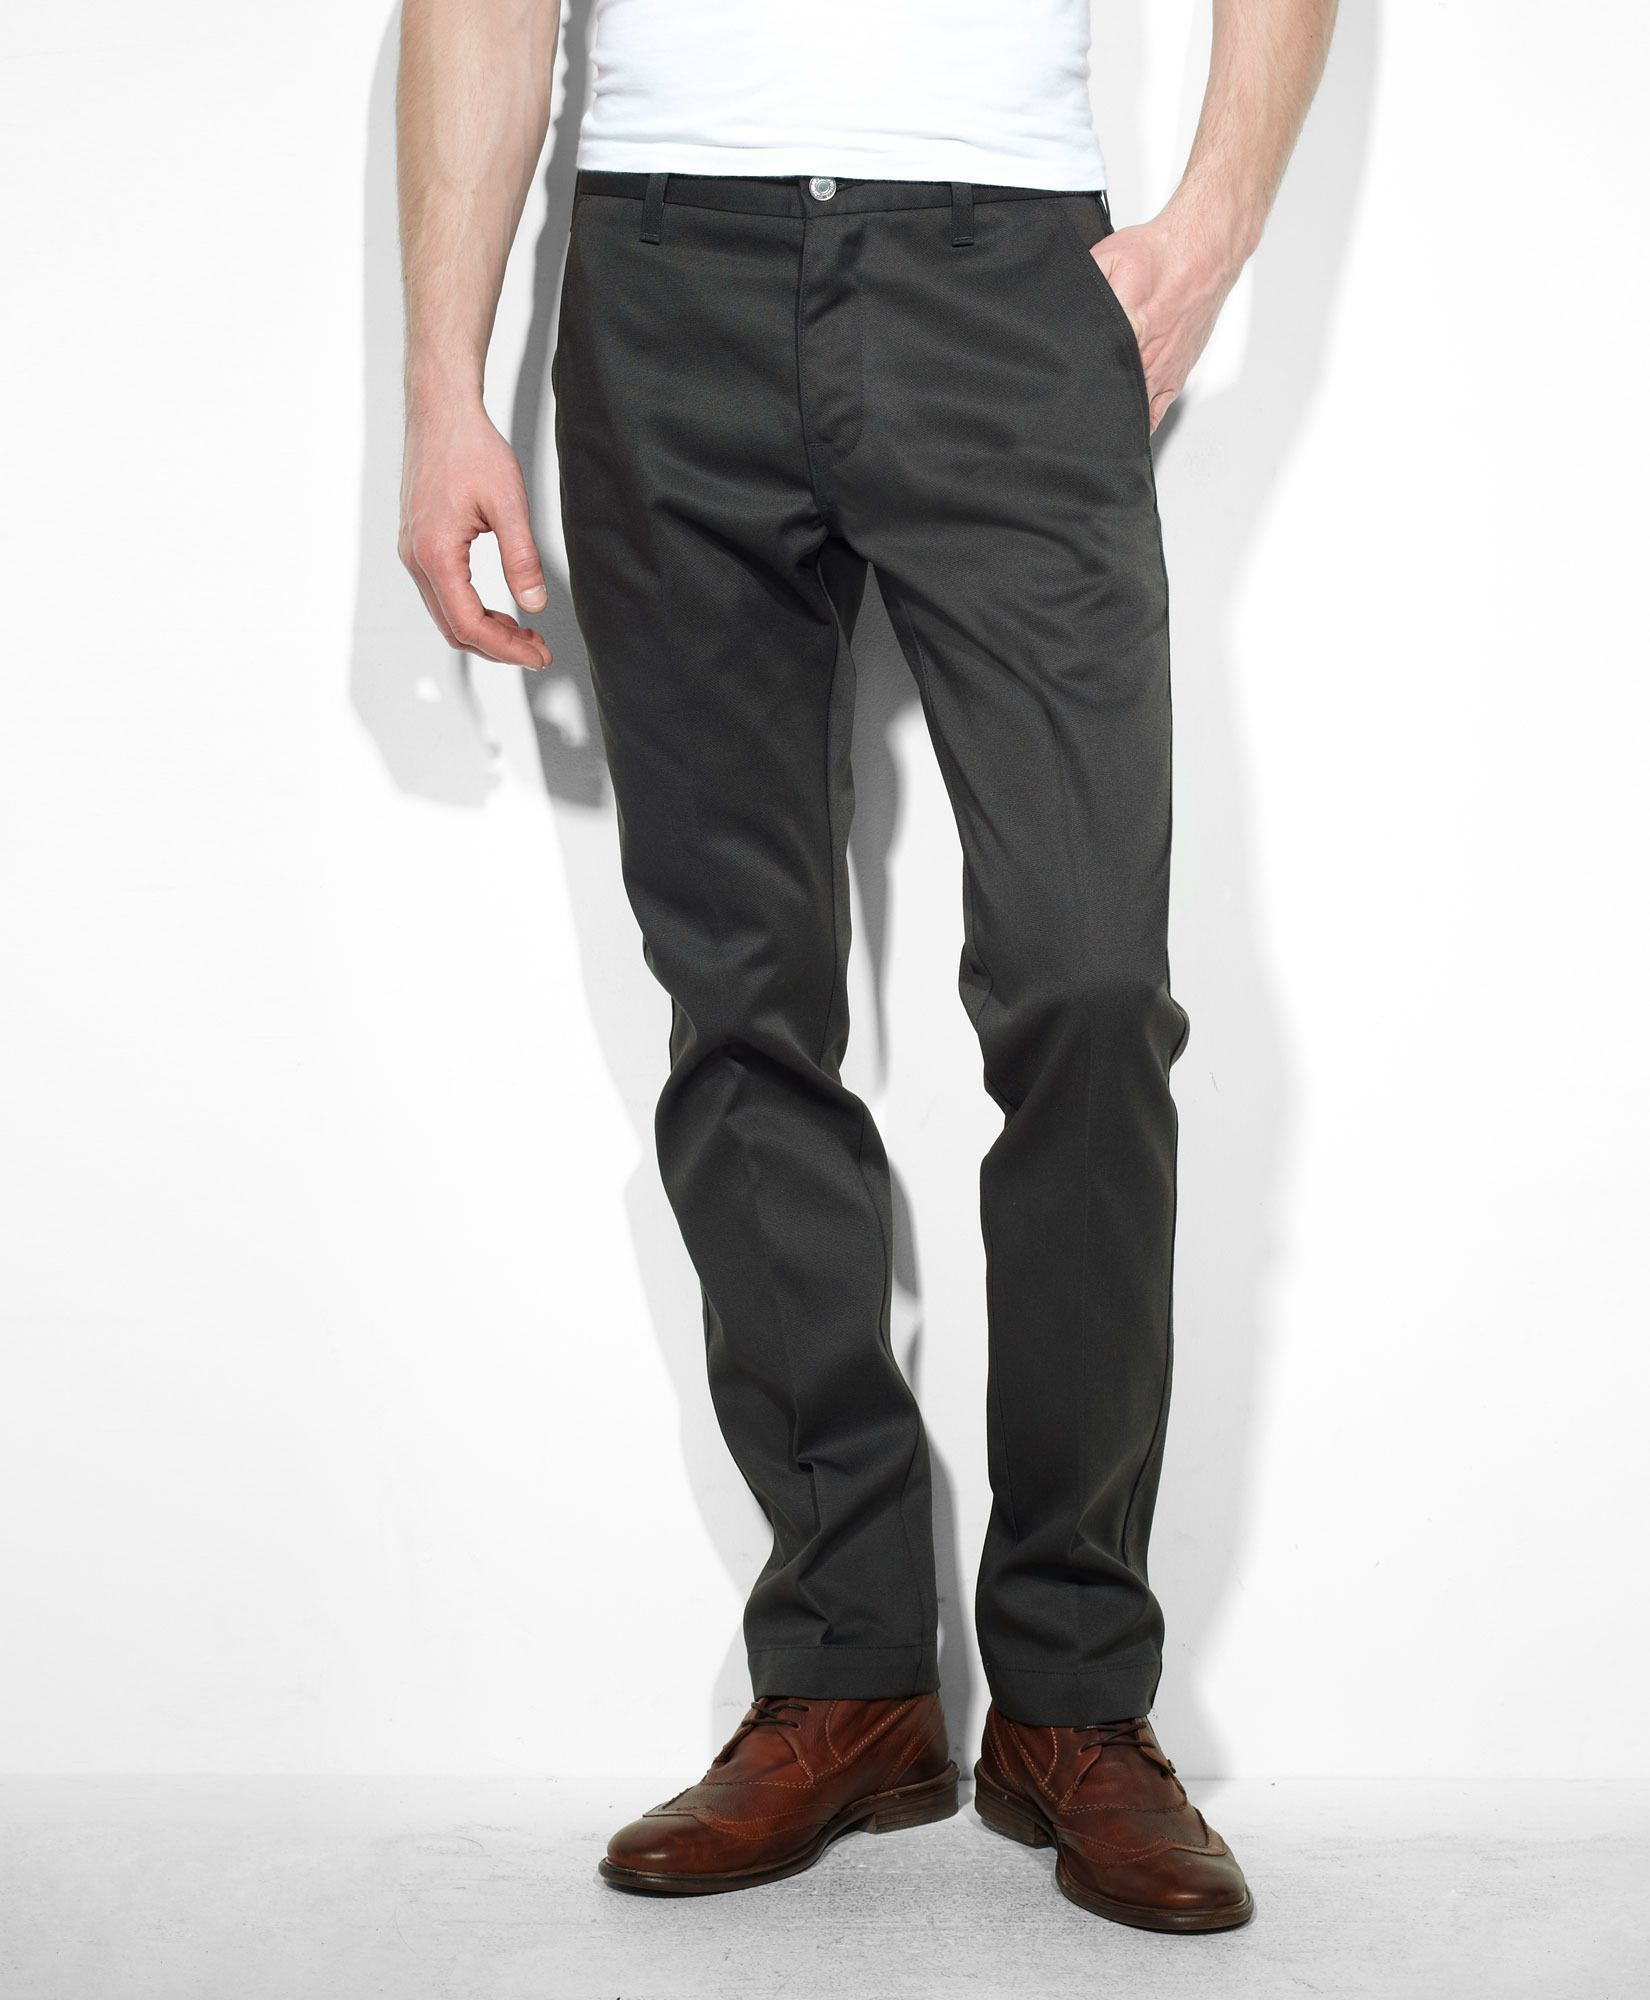 Levi's 511™ Skinny Sta-Prest™ Pants - Pirate Black - 511™ Skinny